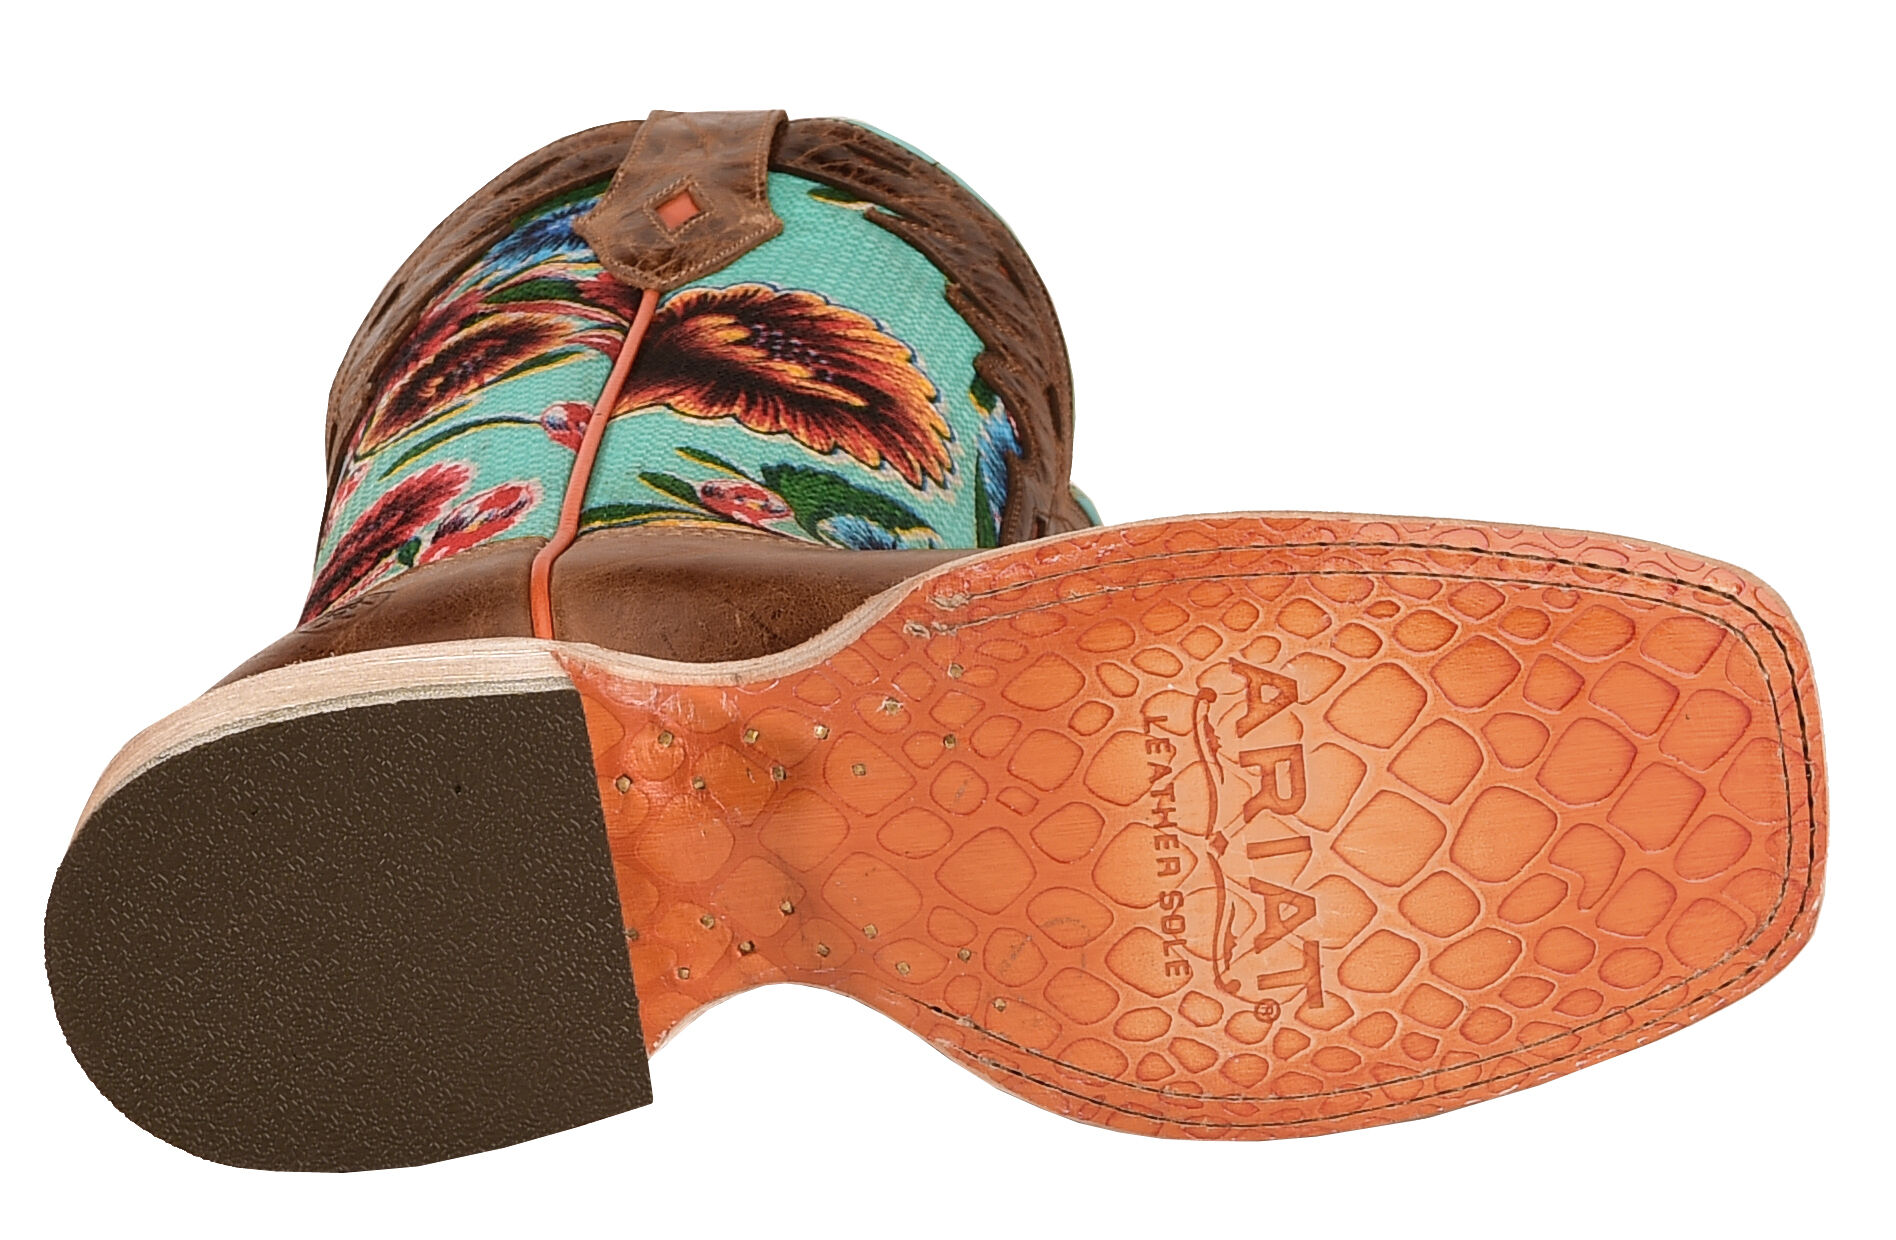 ARIAT Womens Floral Textile Circuit Champion Cowgirl Boot Square Toe